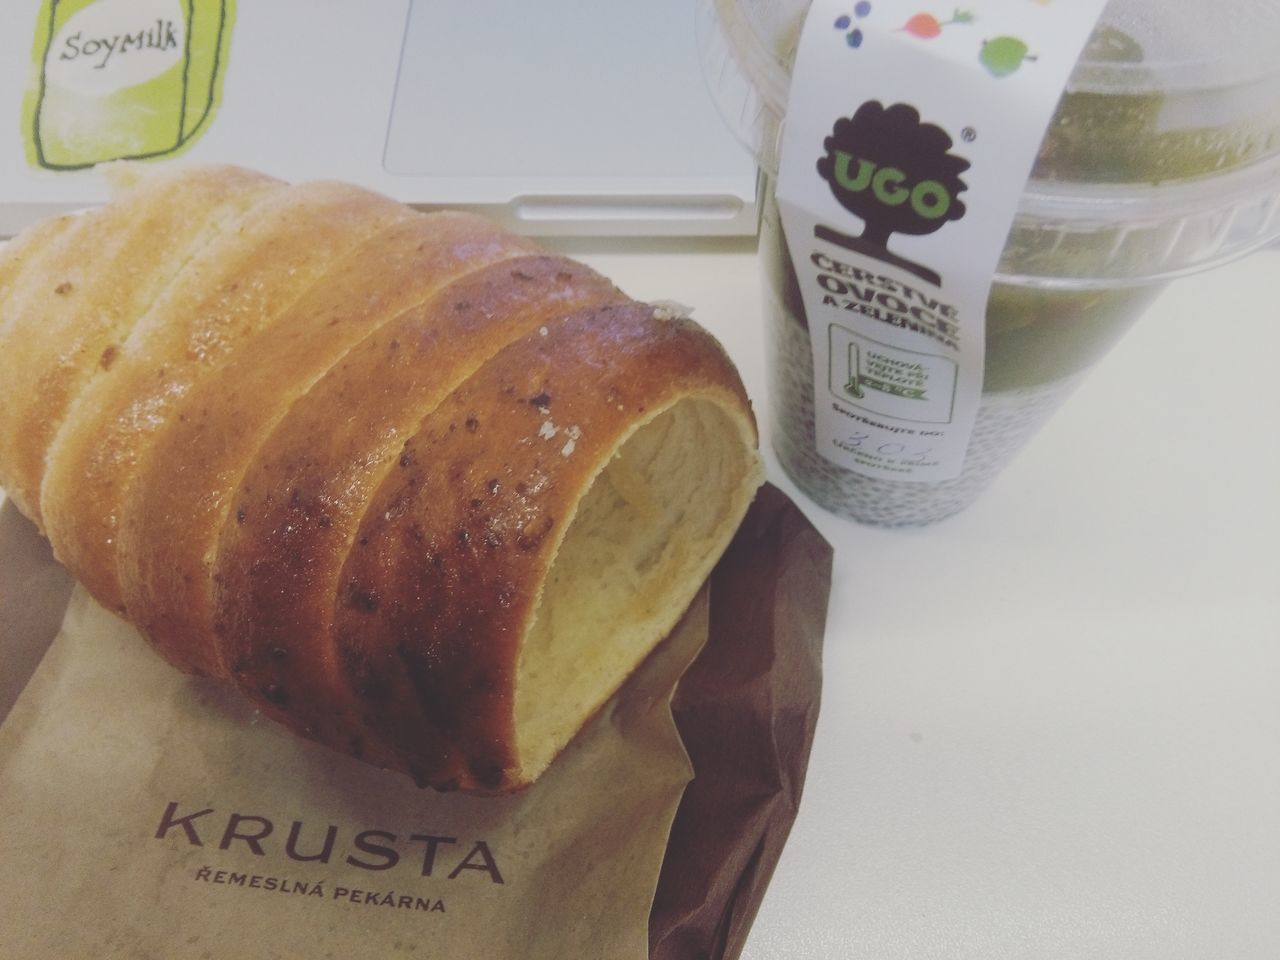 Bakerykrusta Chia Seed Chia Seeds Chiaseed Pudding Chiaseed Puddings Close-up Communication Czech Snack Czech Sweets Czechsweets Day Food Food And Drink Freshness Indoors  Krusta Bakery Krusta Pra Label No People Ready-to-eat Text Trdelnik Ugo Western Script